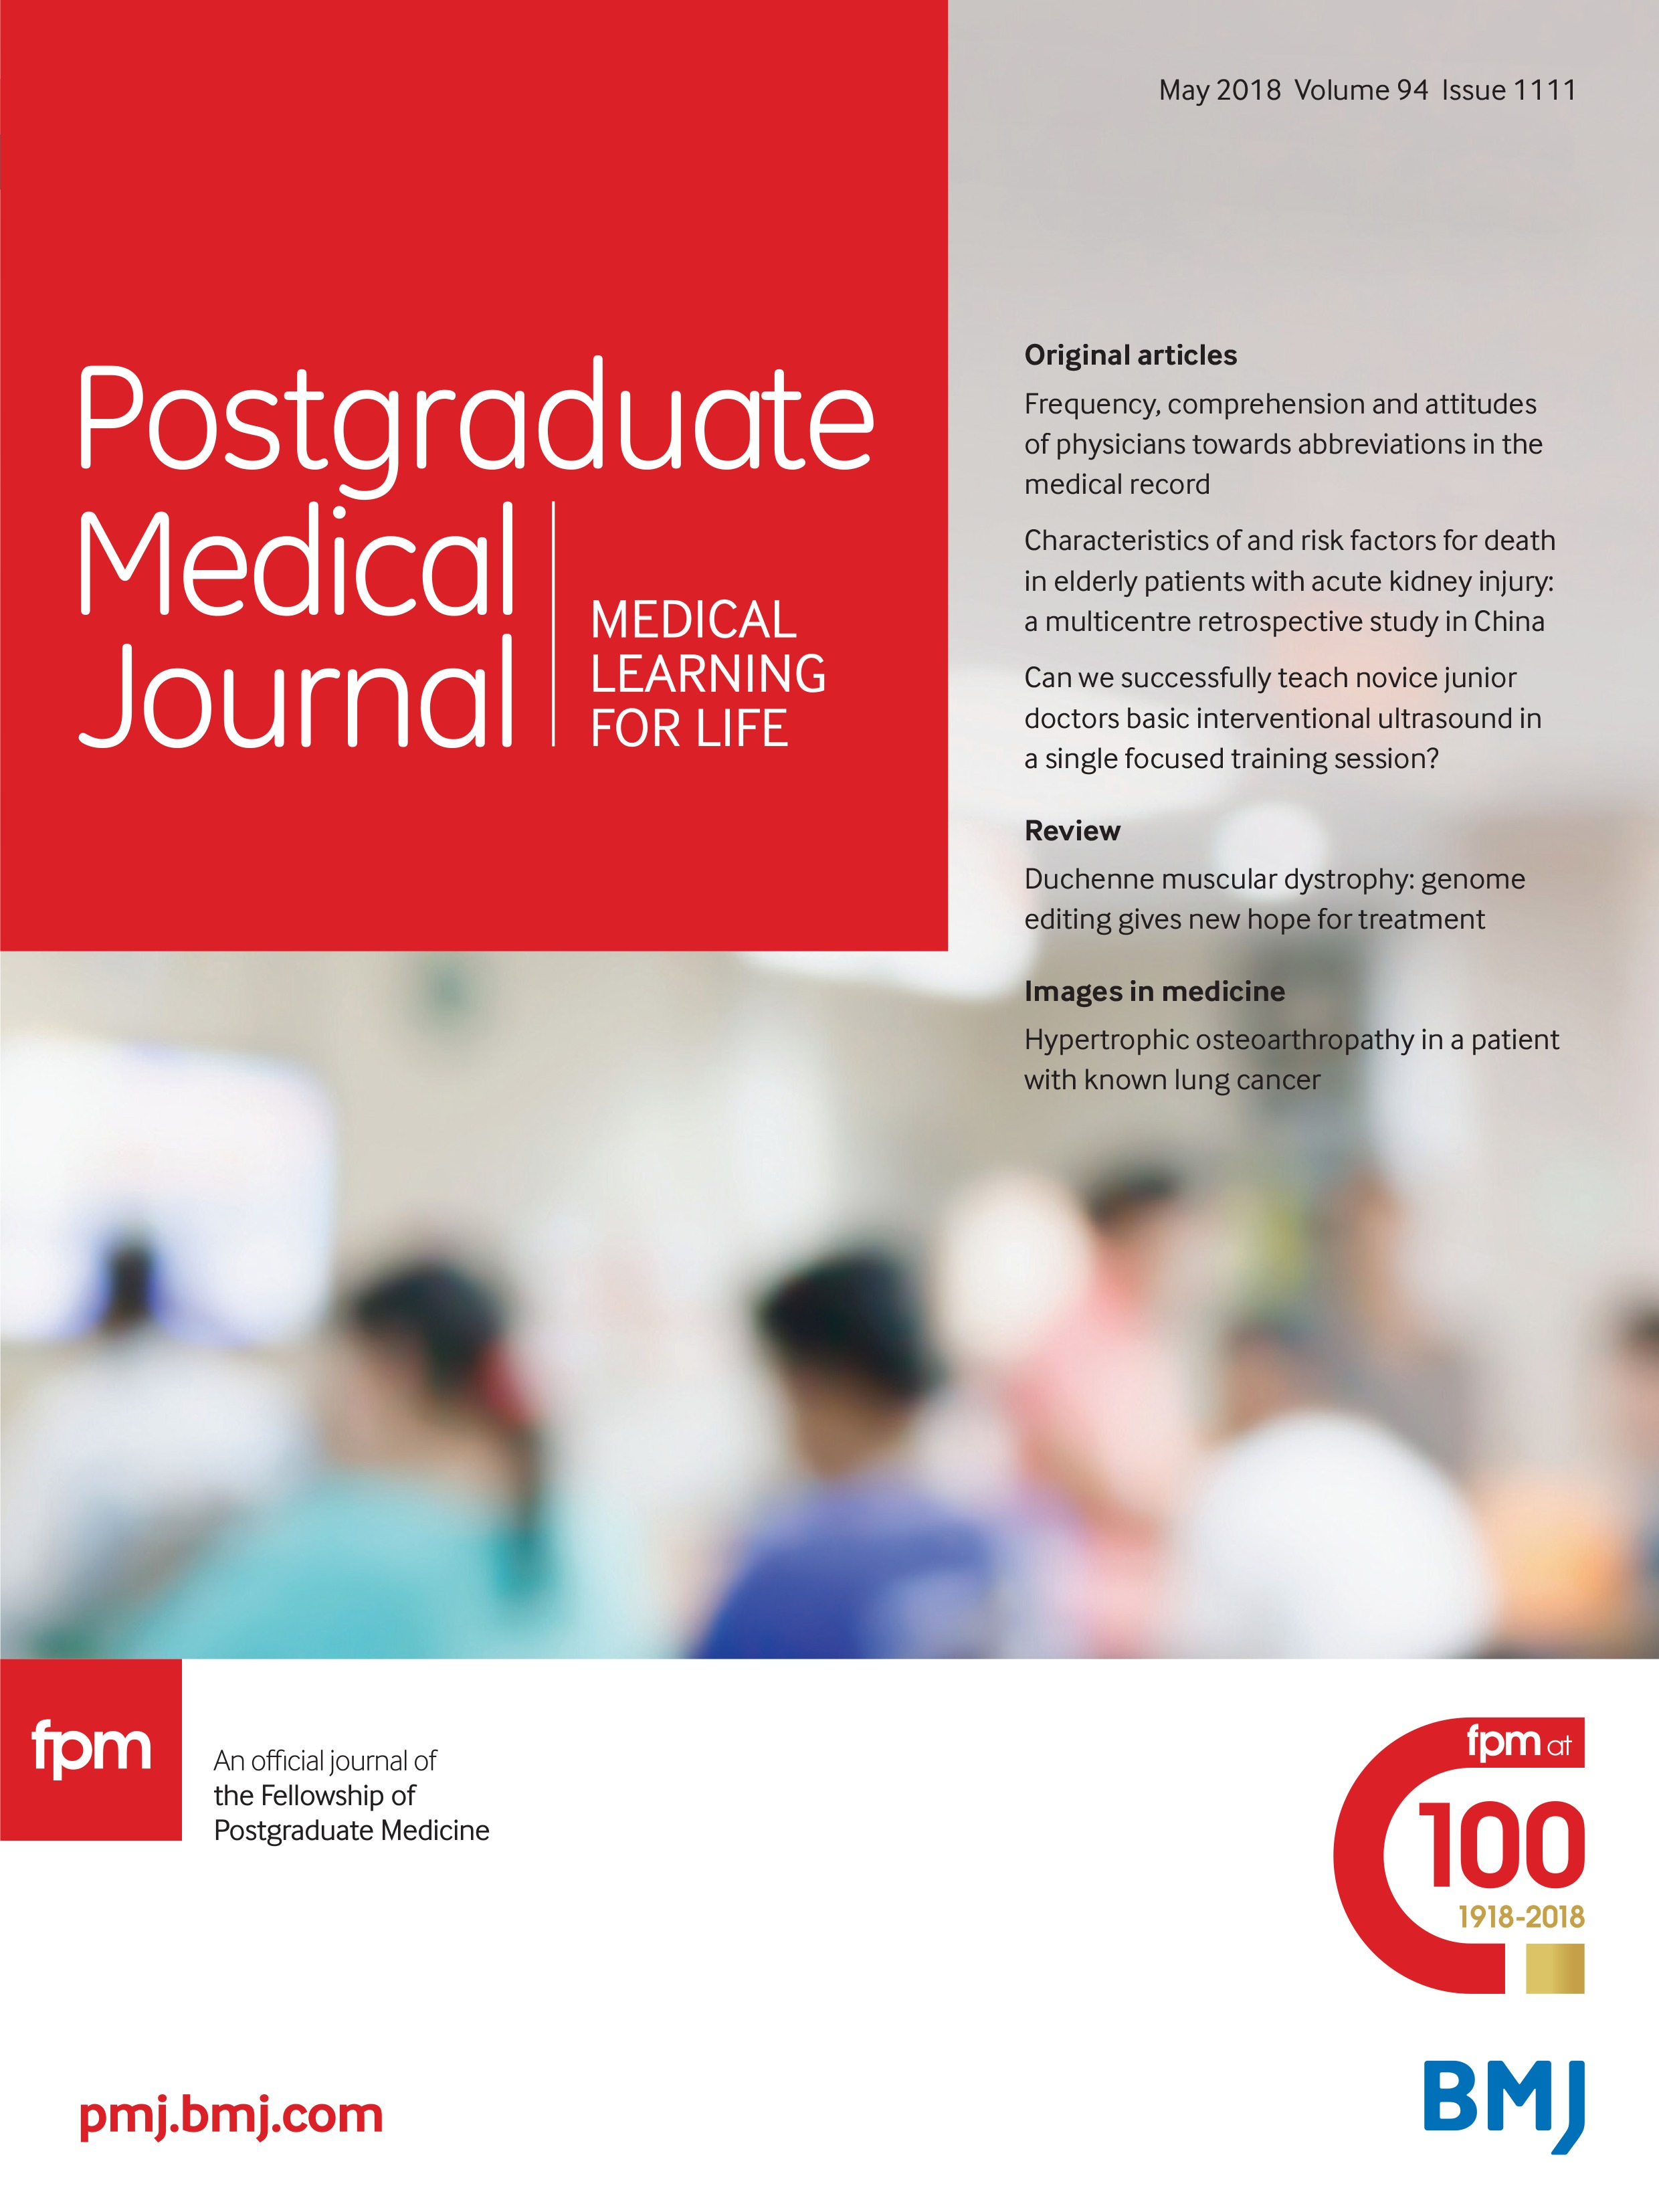 Frequency, comprehension and attitudes of physicians towards